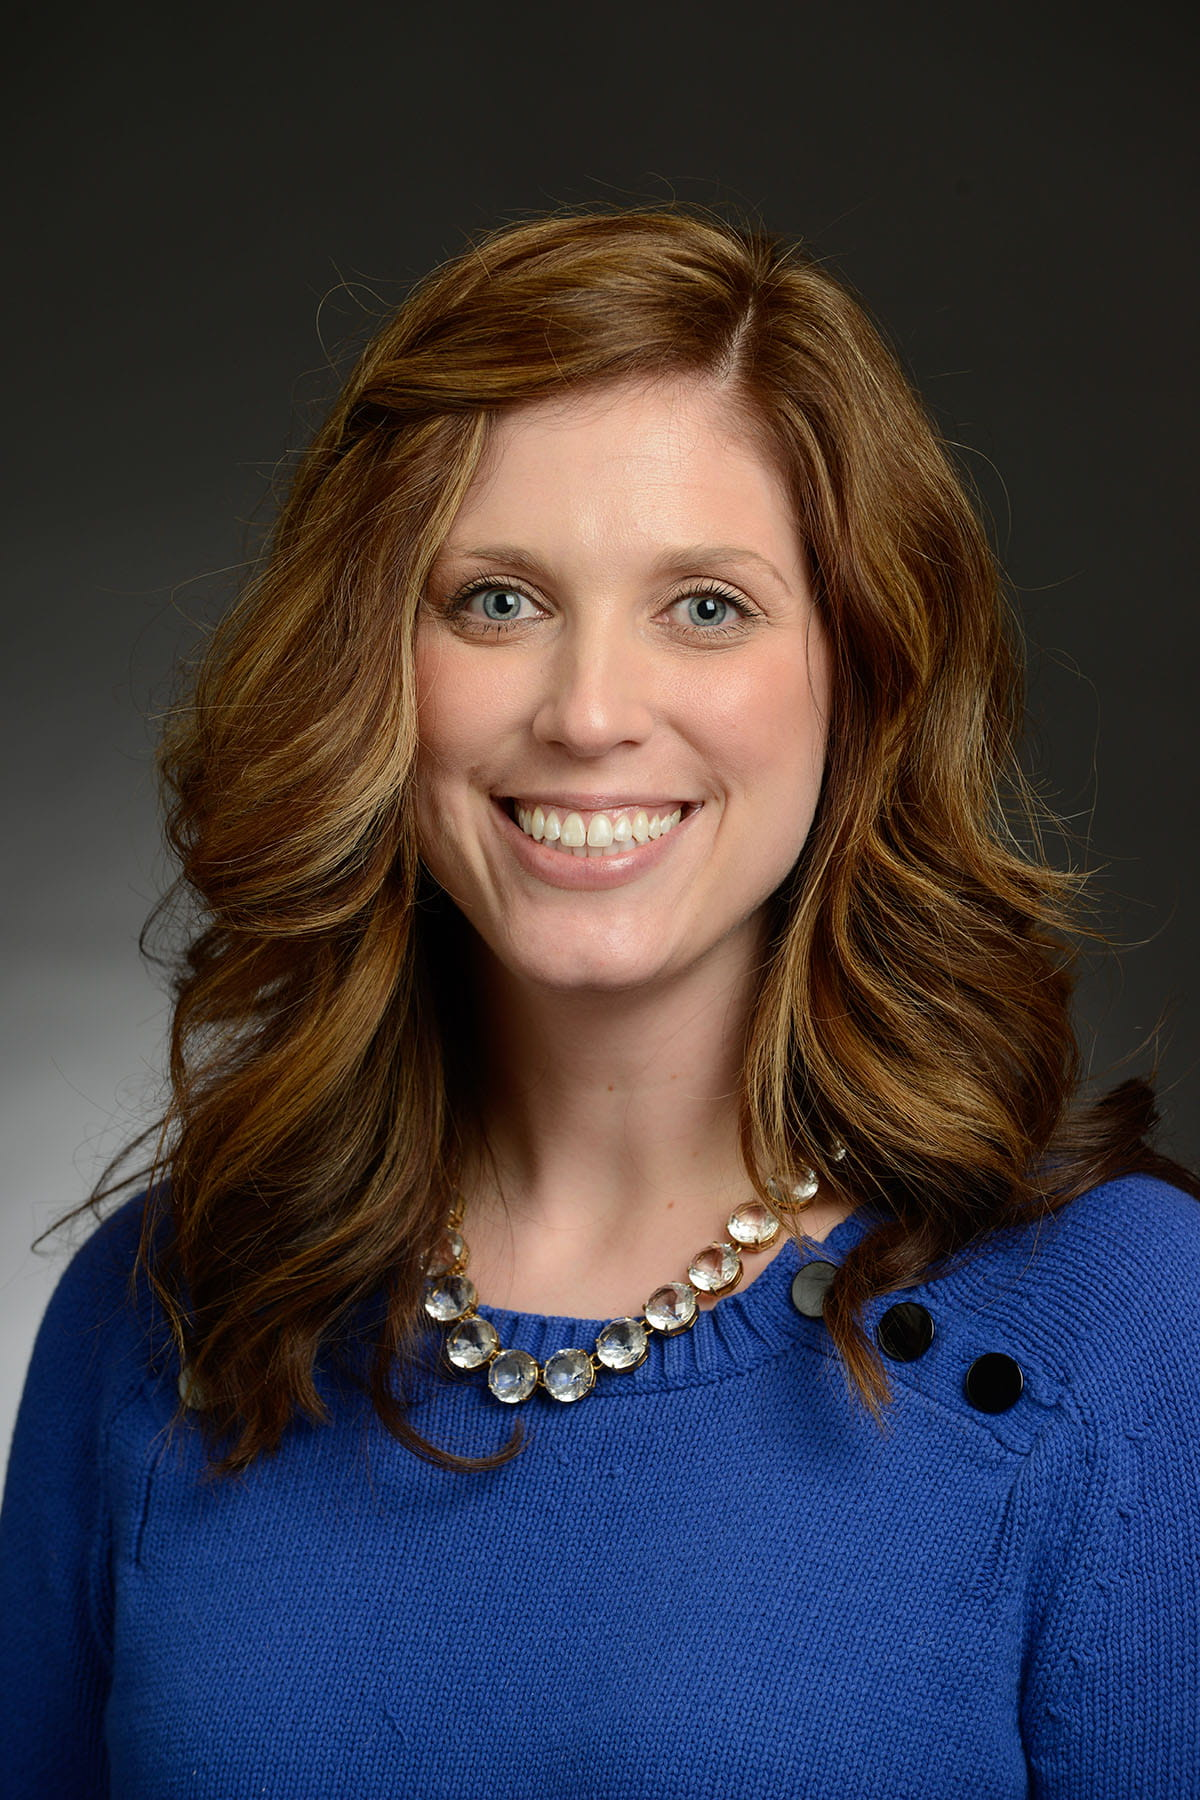 Juli A. Sublett-Smith, MSN, APRN, FNP